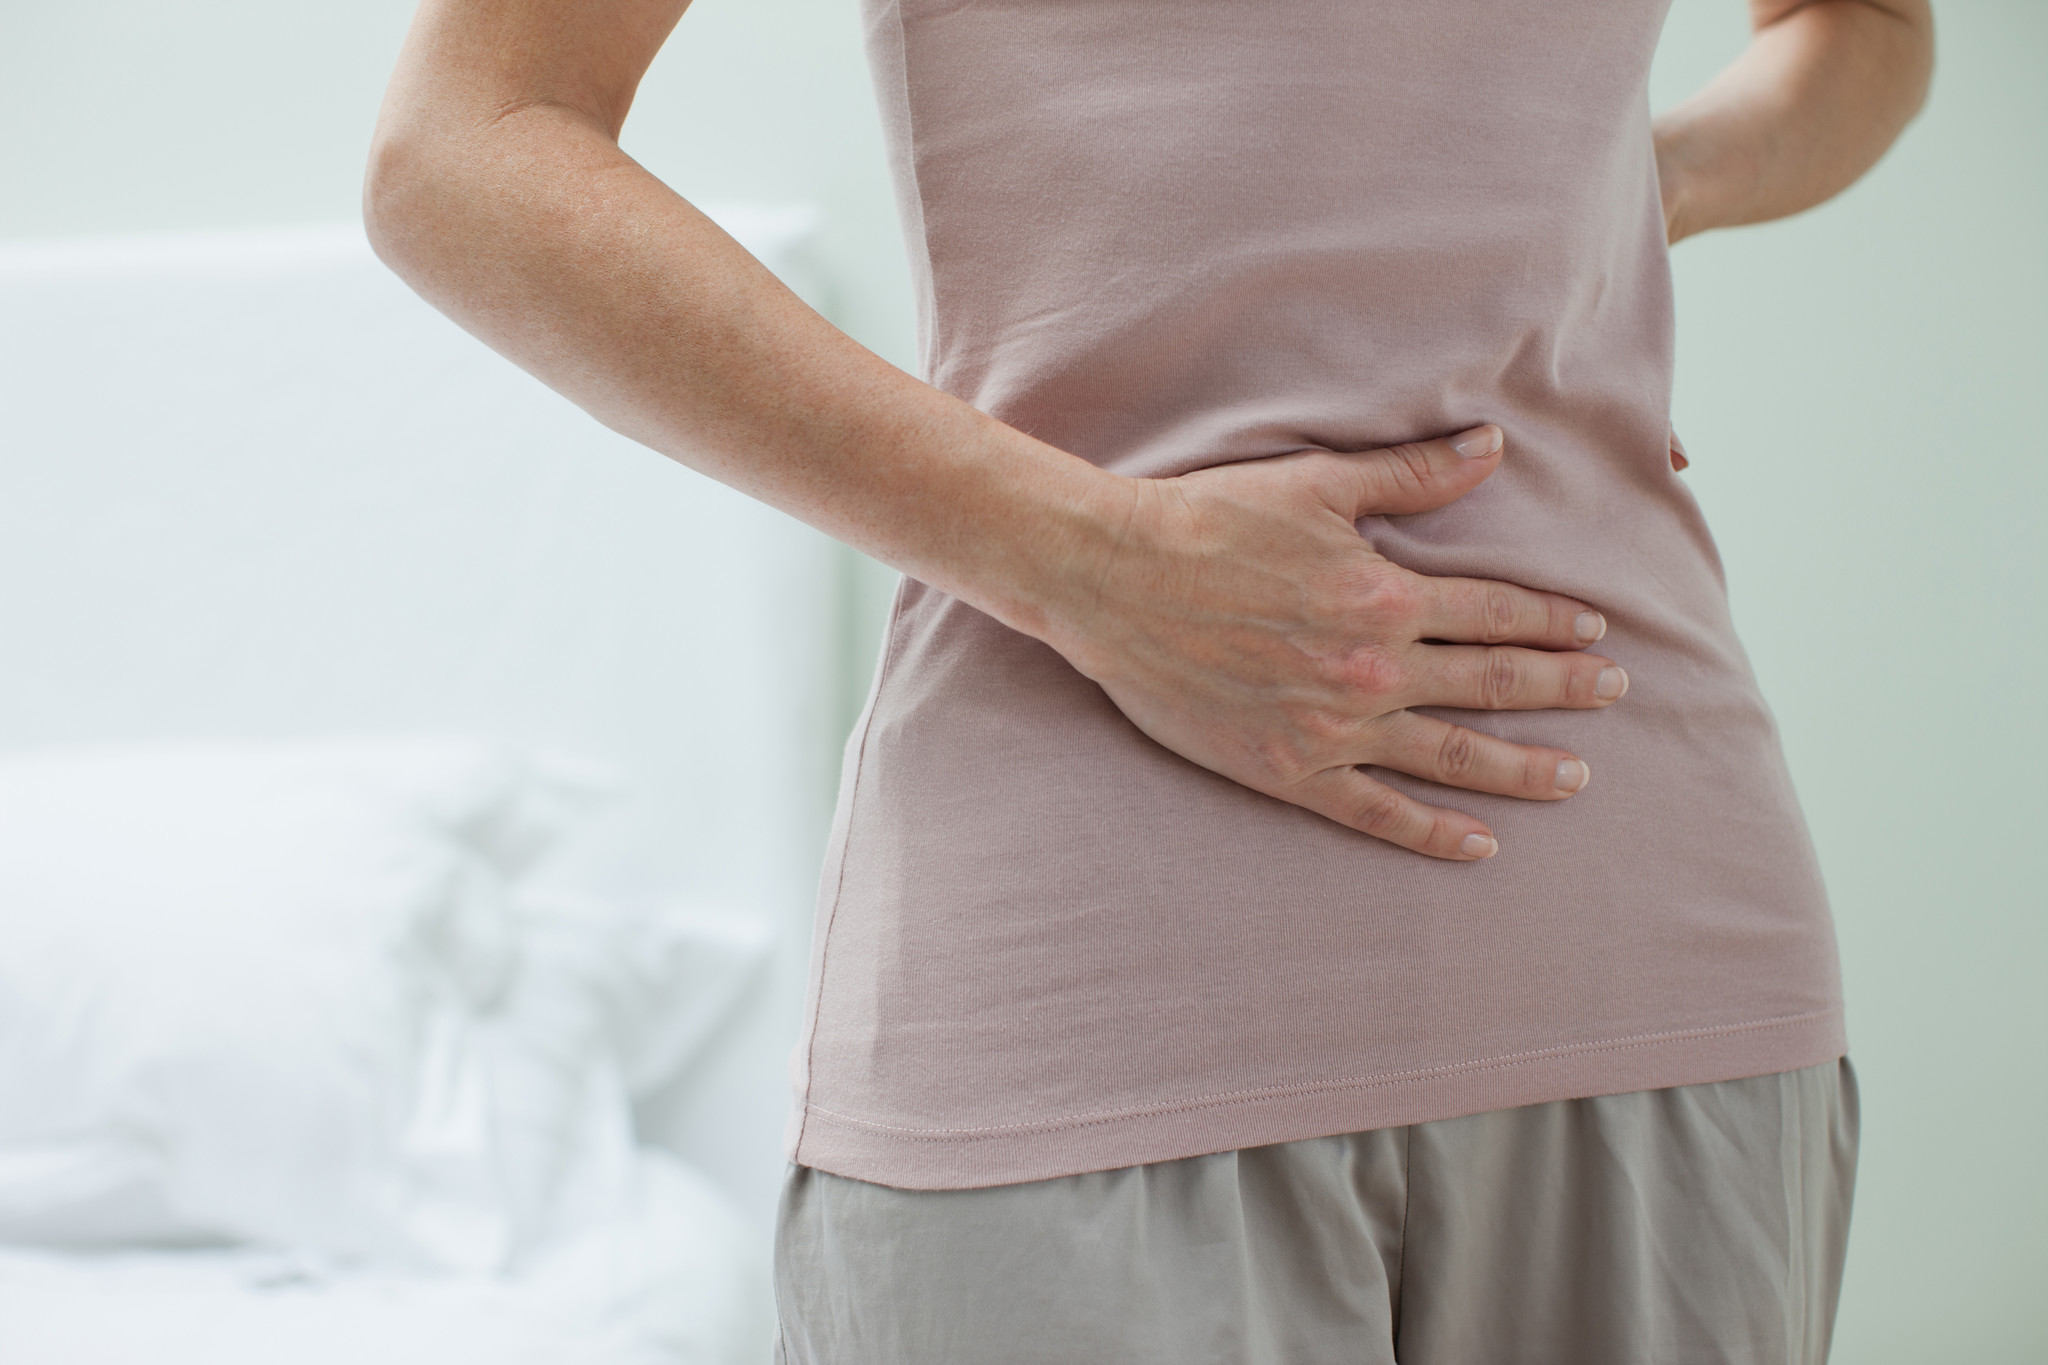 Be wary of newer, unregulated digestive enzyme supplements